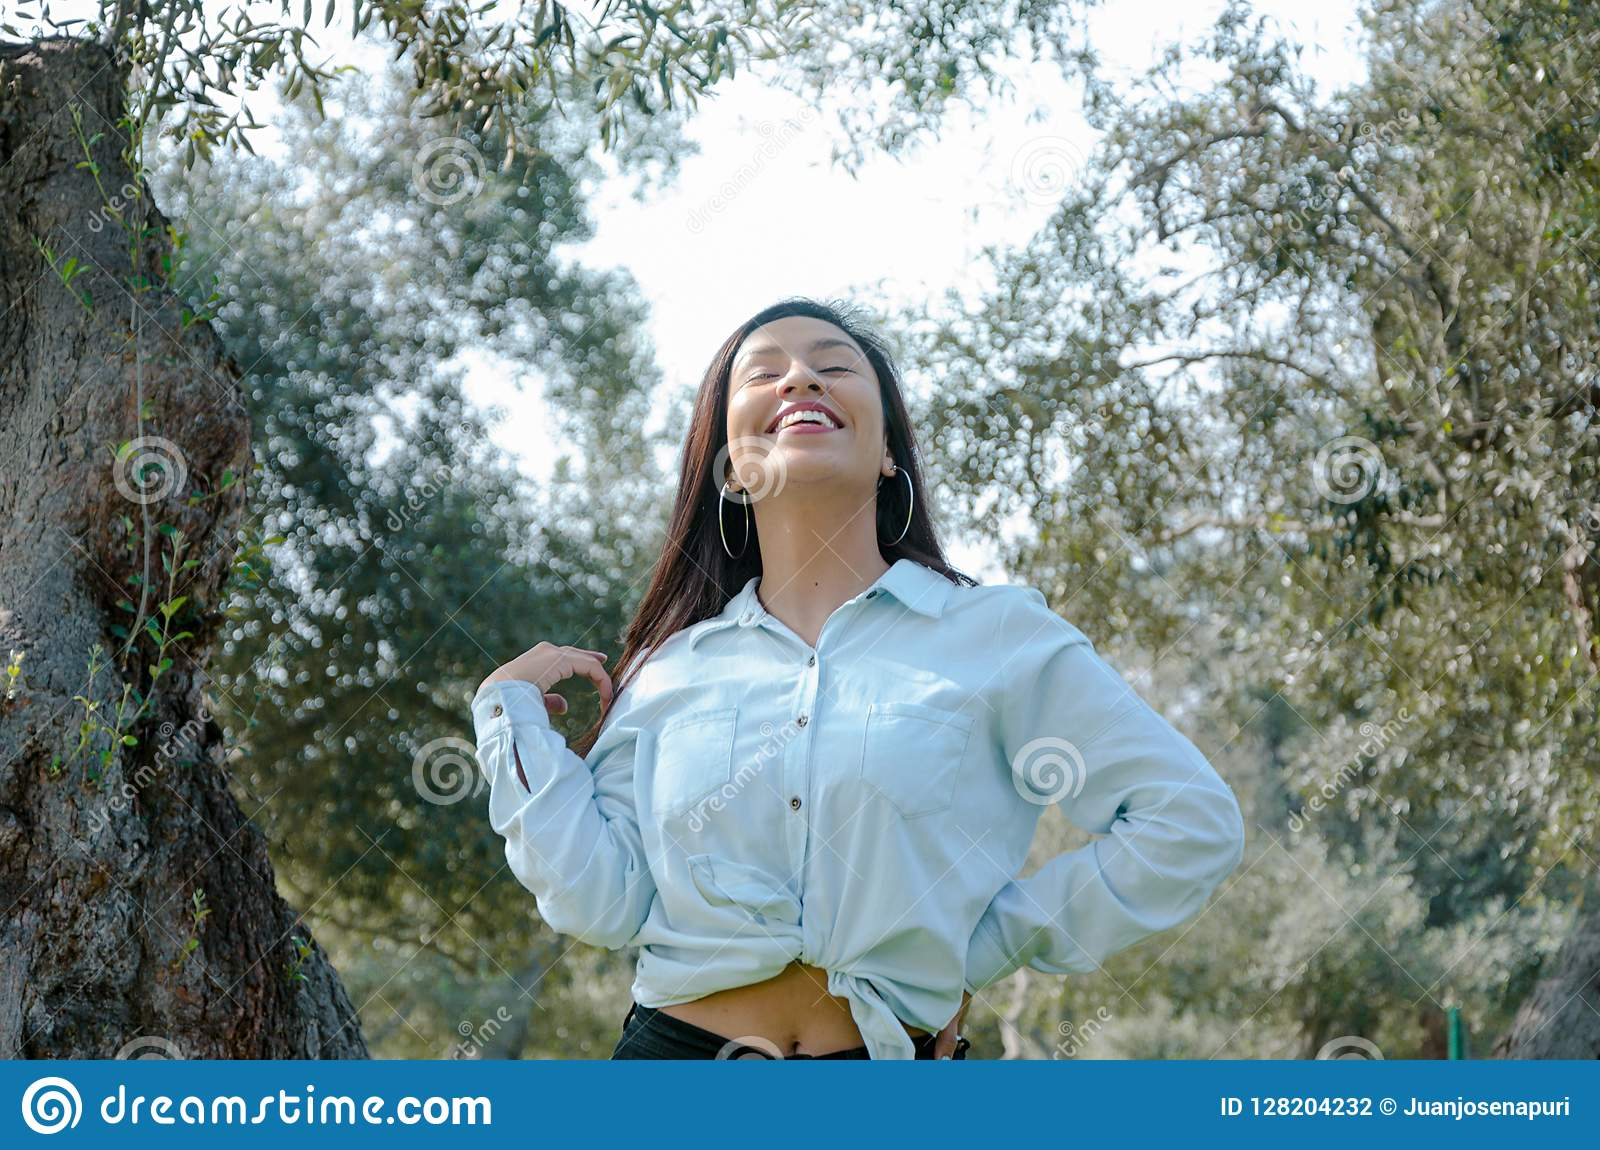 Woman smiling looking up to blue sky taking deep breath celebrating freedom. Positive human emotion face expression